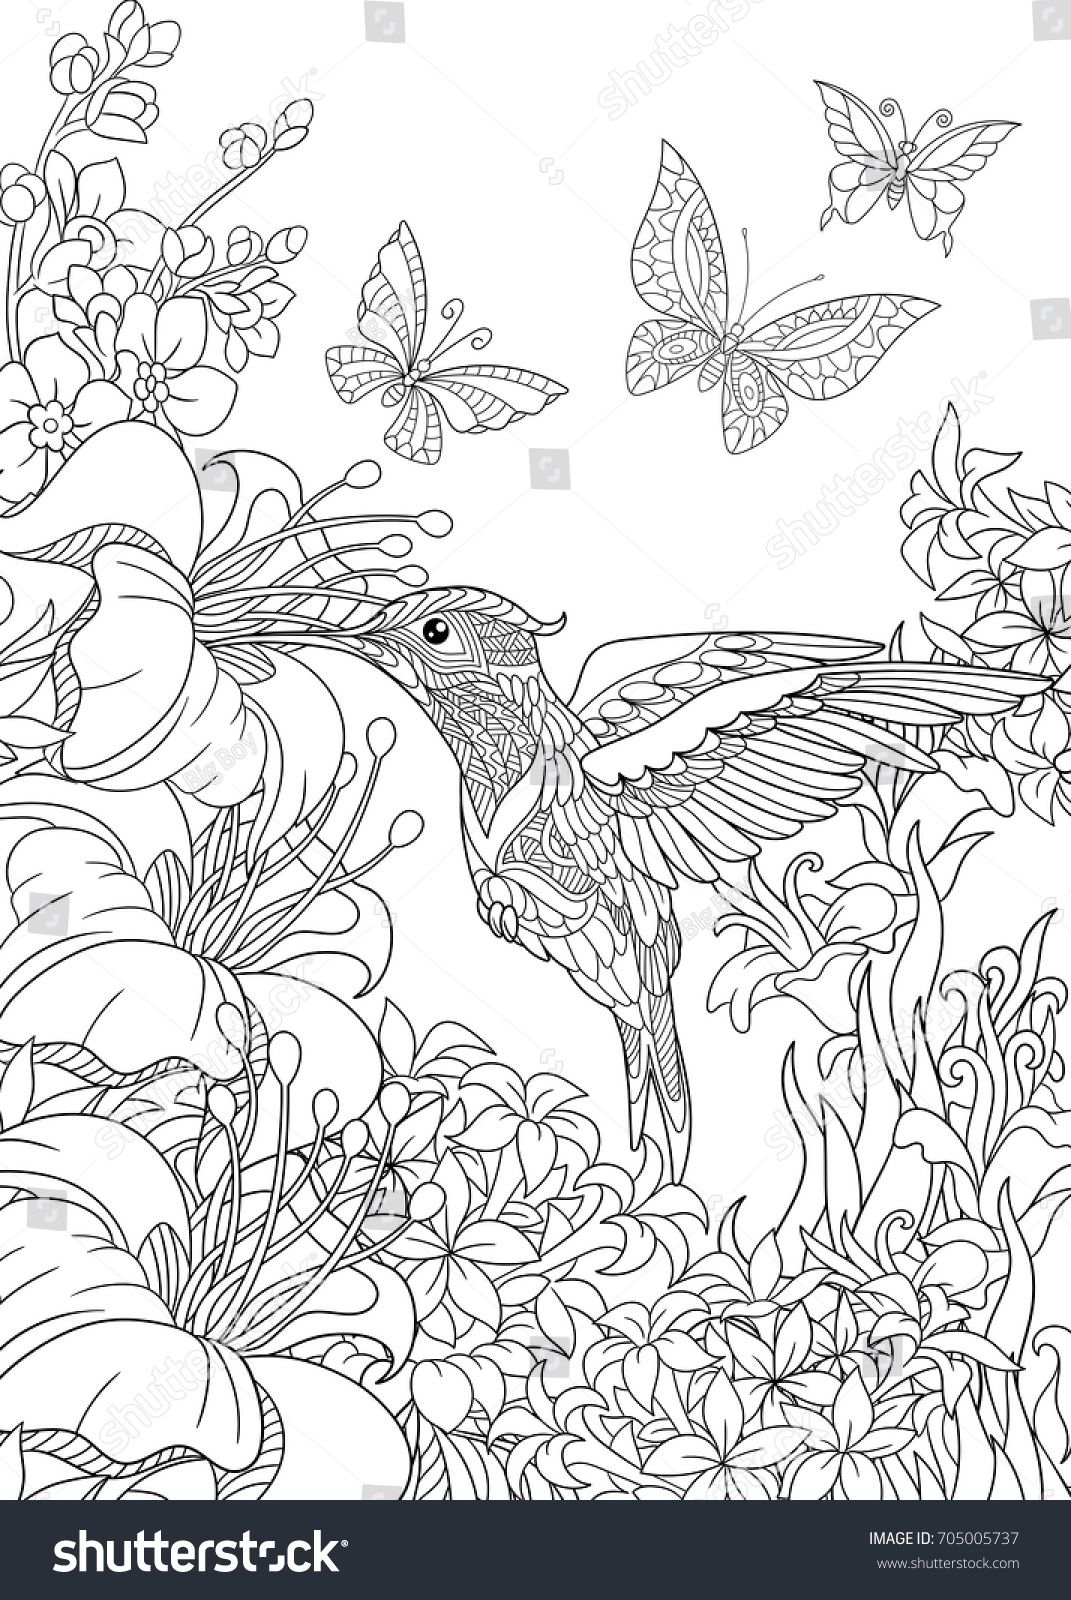 Pin By Linda Thielges On Adult Coloring Pinterest Adult